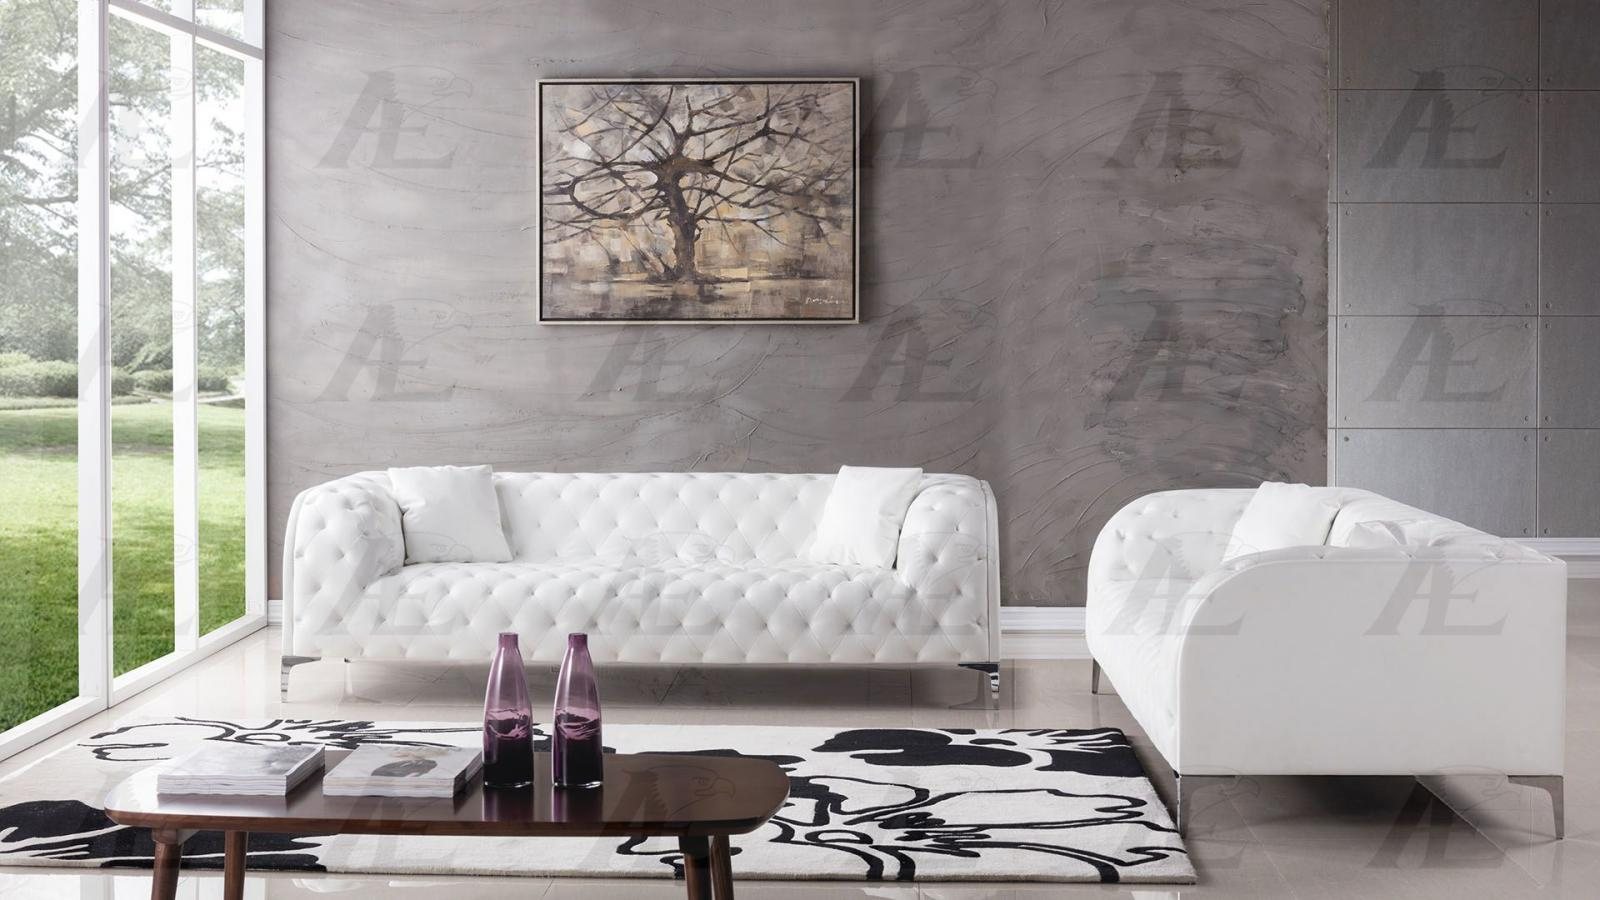 American Eagle AE-D822 Modern White Faux Leather Sofa Set in 2pcs